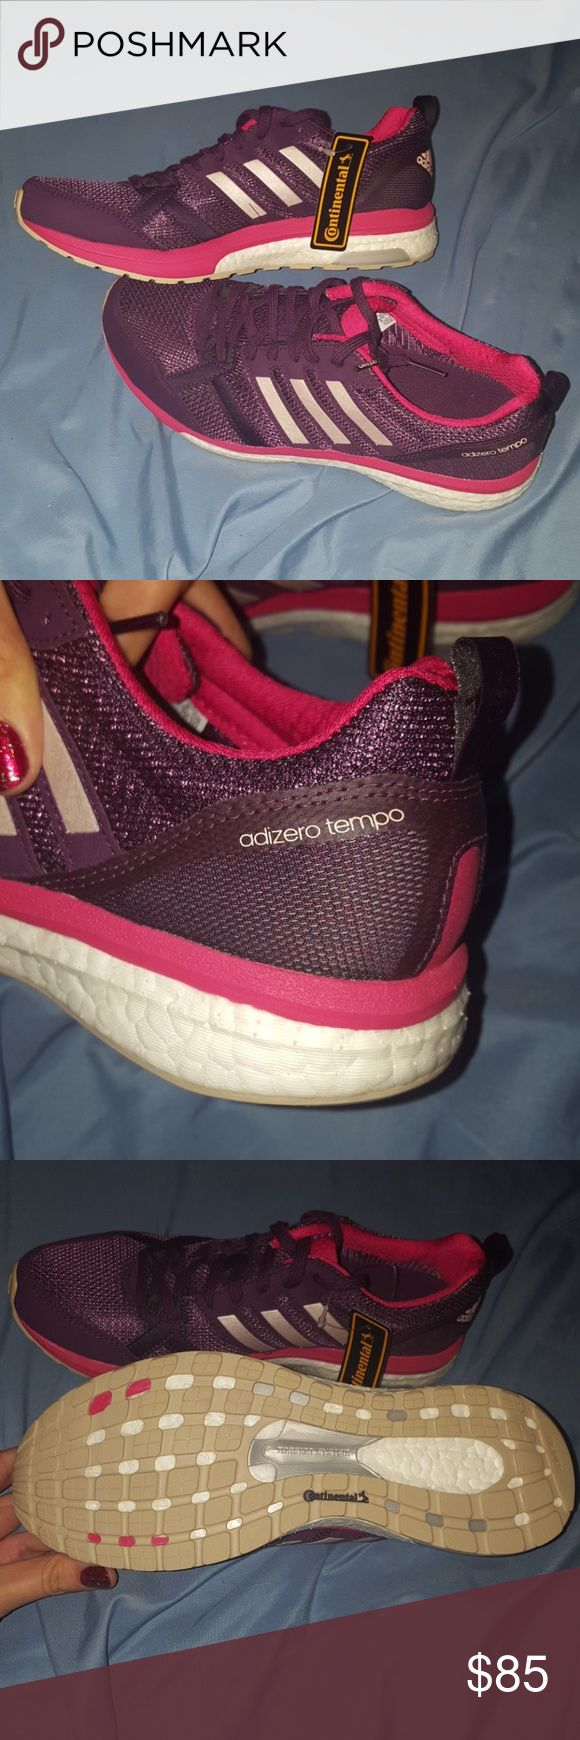 Adidas adizero tempo boost running shoes Womens size 9 brand new never worn with tag no box purple pink and white adidas Shoes Athletic Shoes